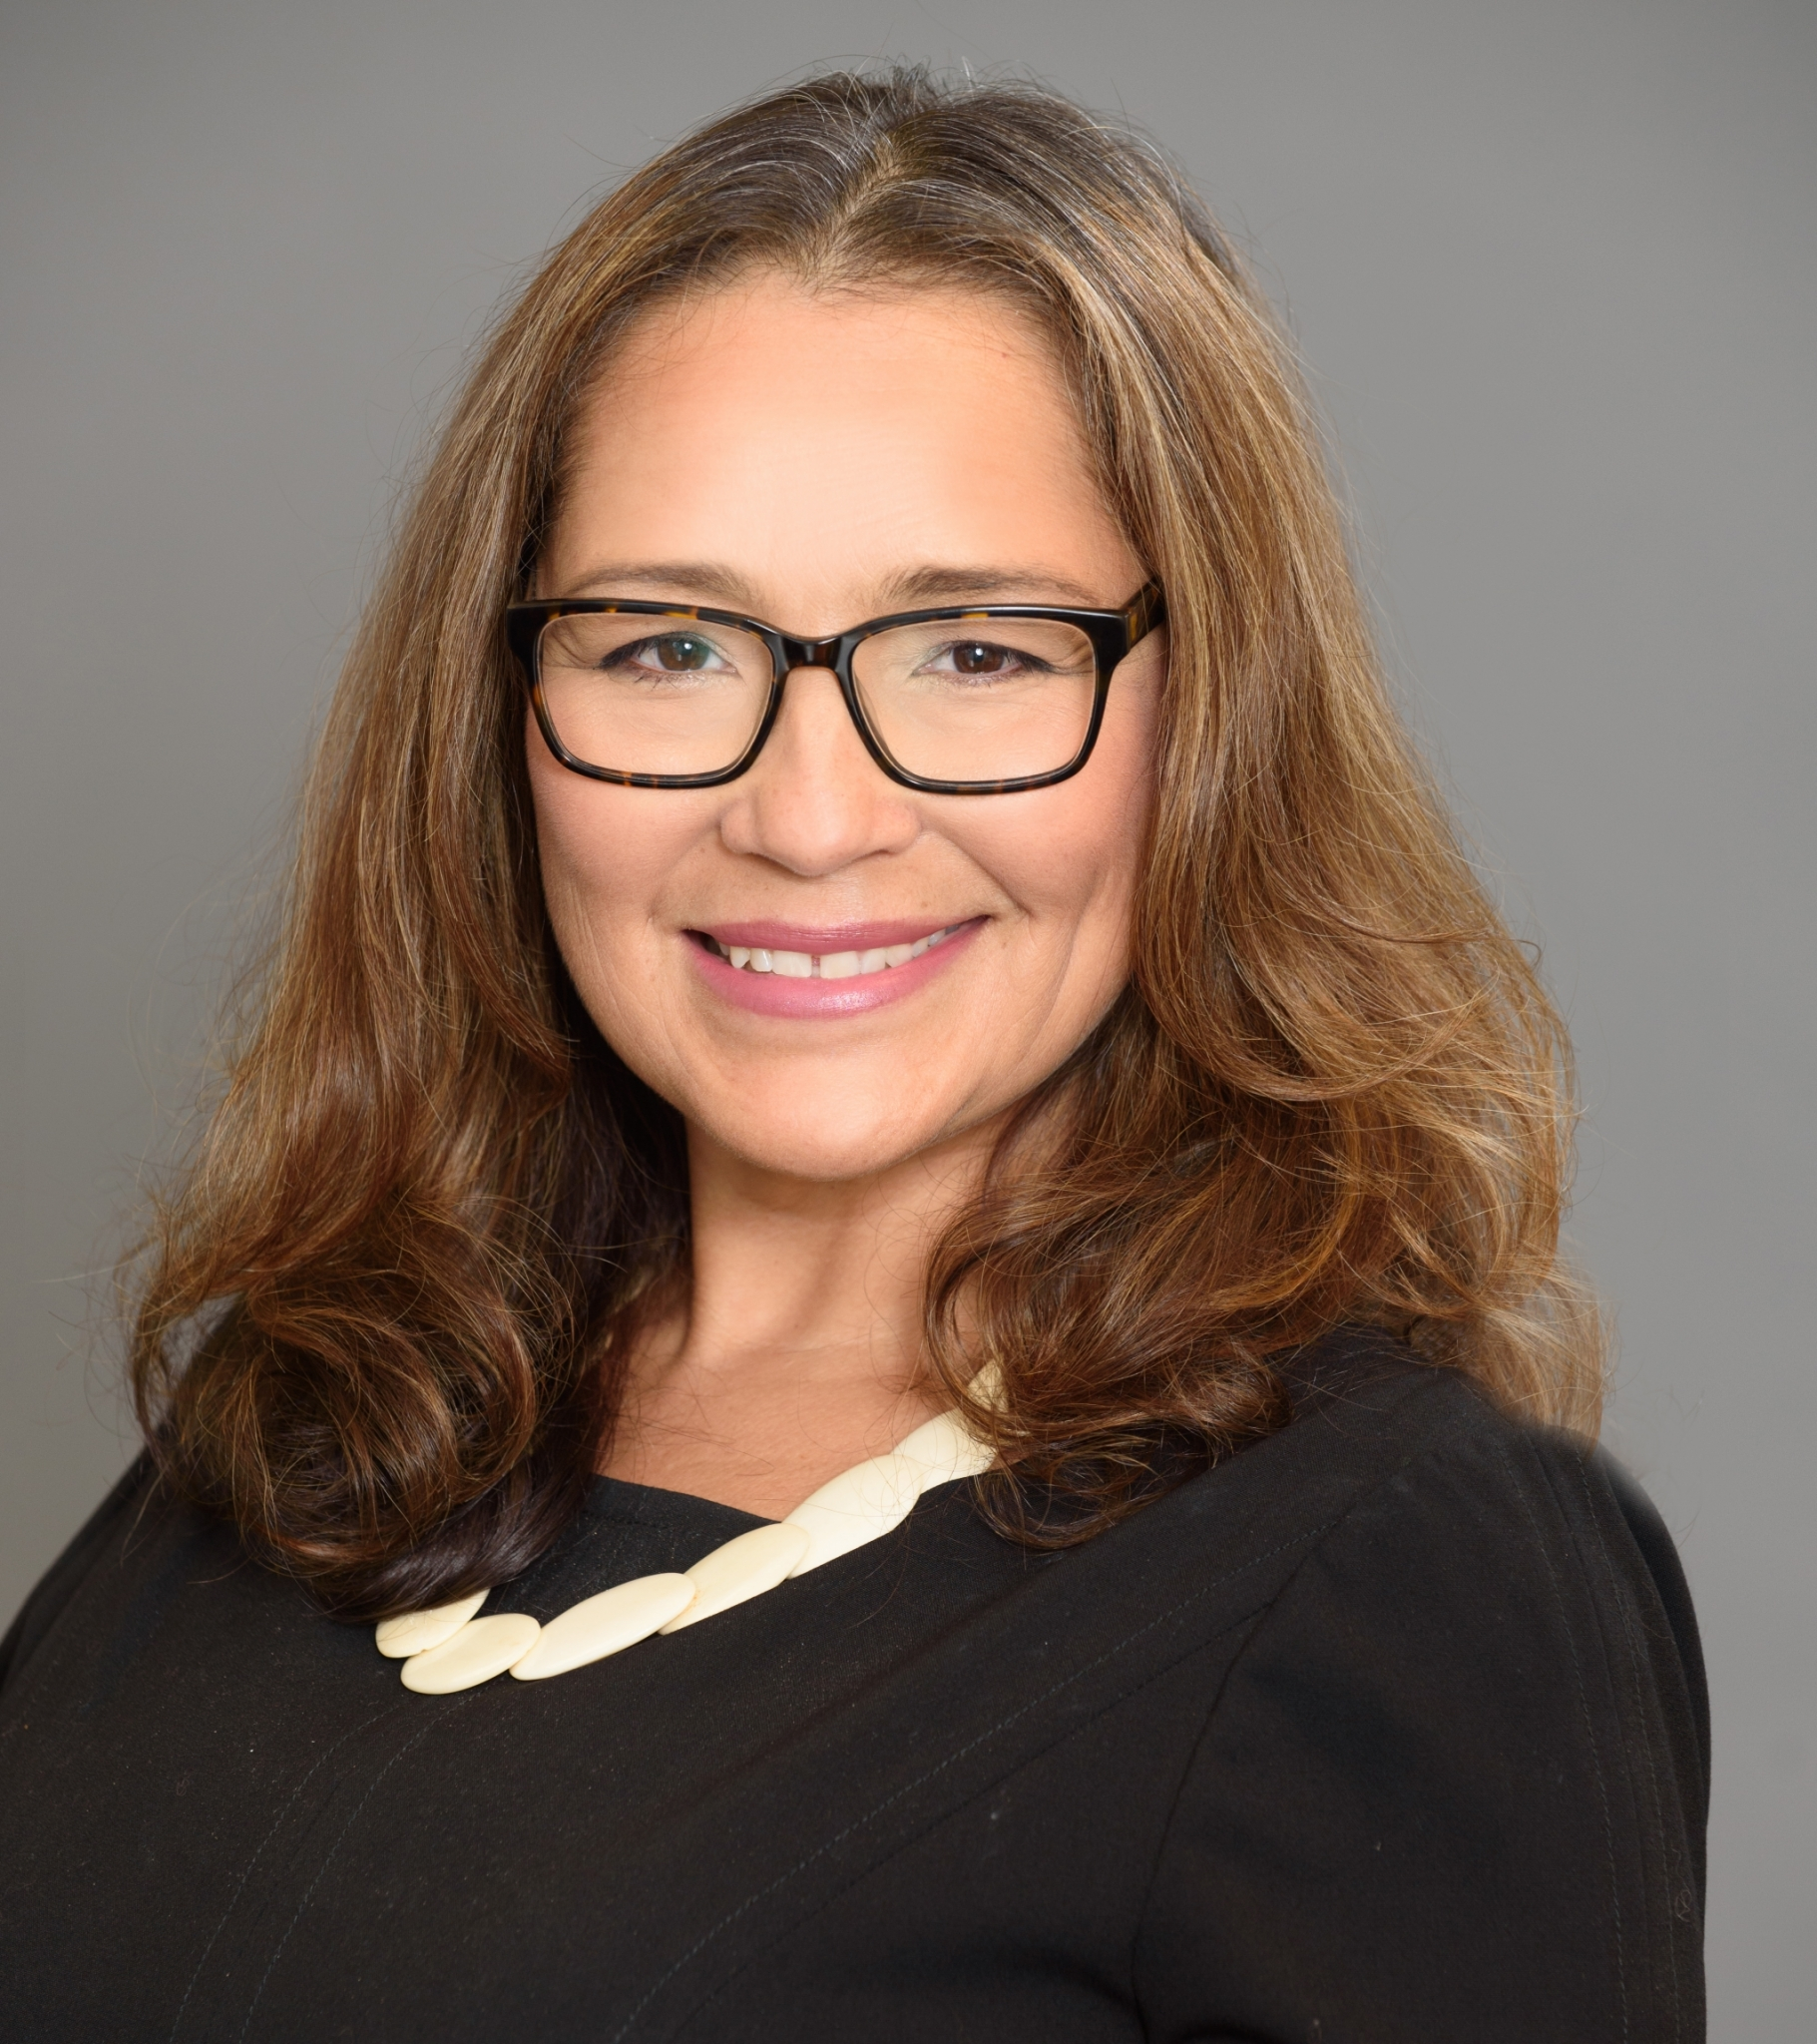 Headshot of Renee Aragon Dolese, Director of Marketing and Communications